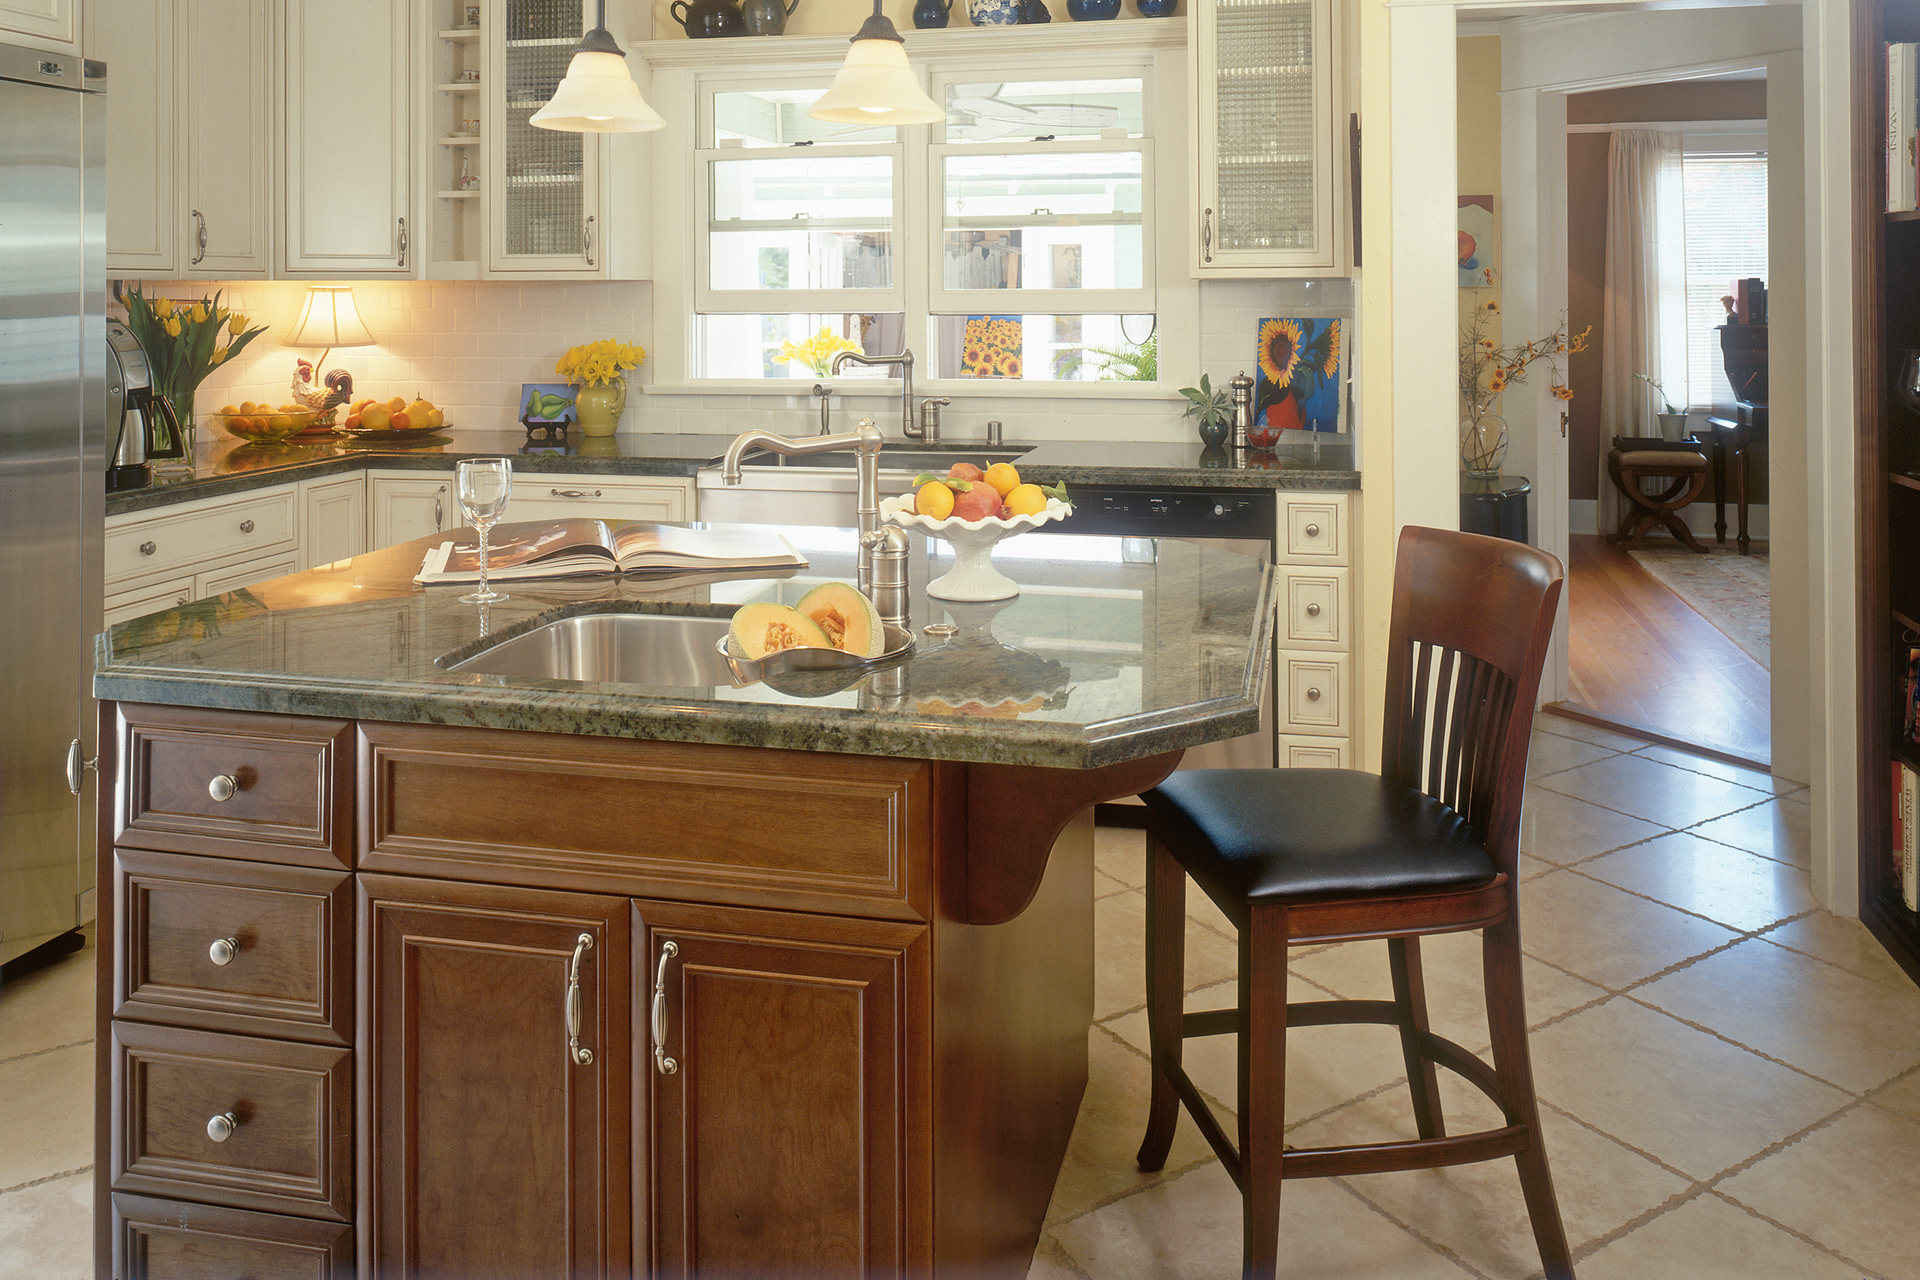 Shaker Cabinet Crown Molding Custom Contemporary Kitchen Cabinets - Alder Wood Java